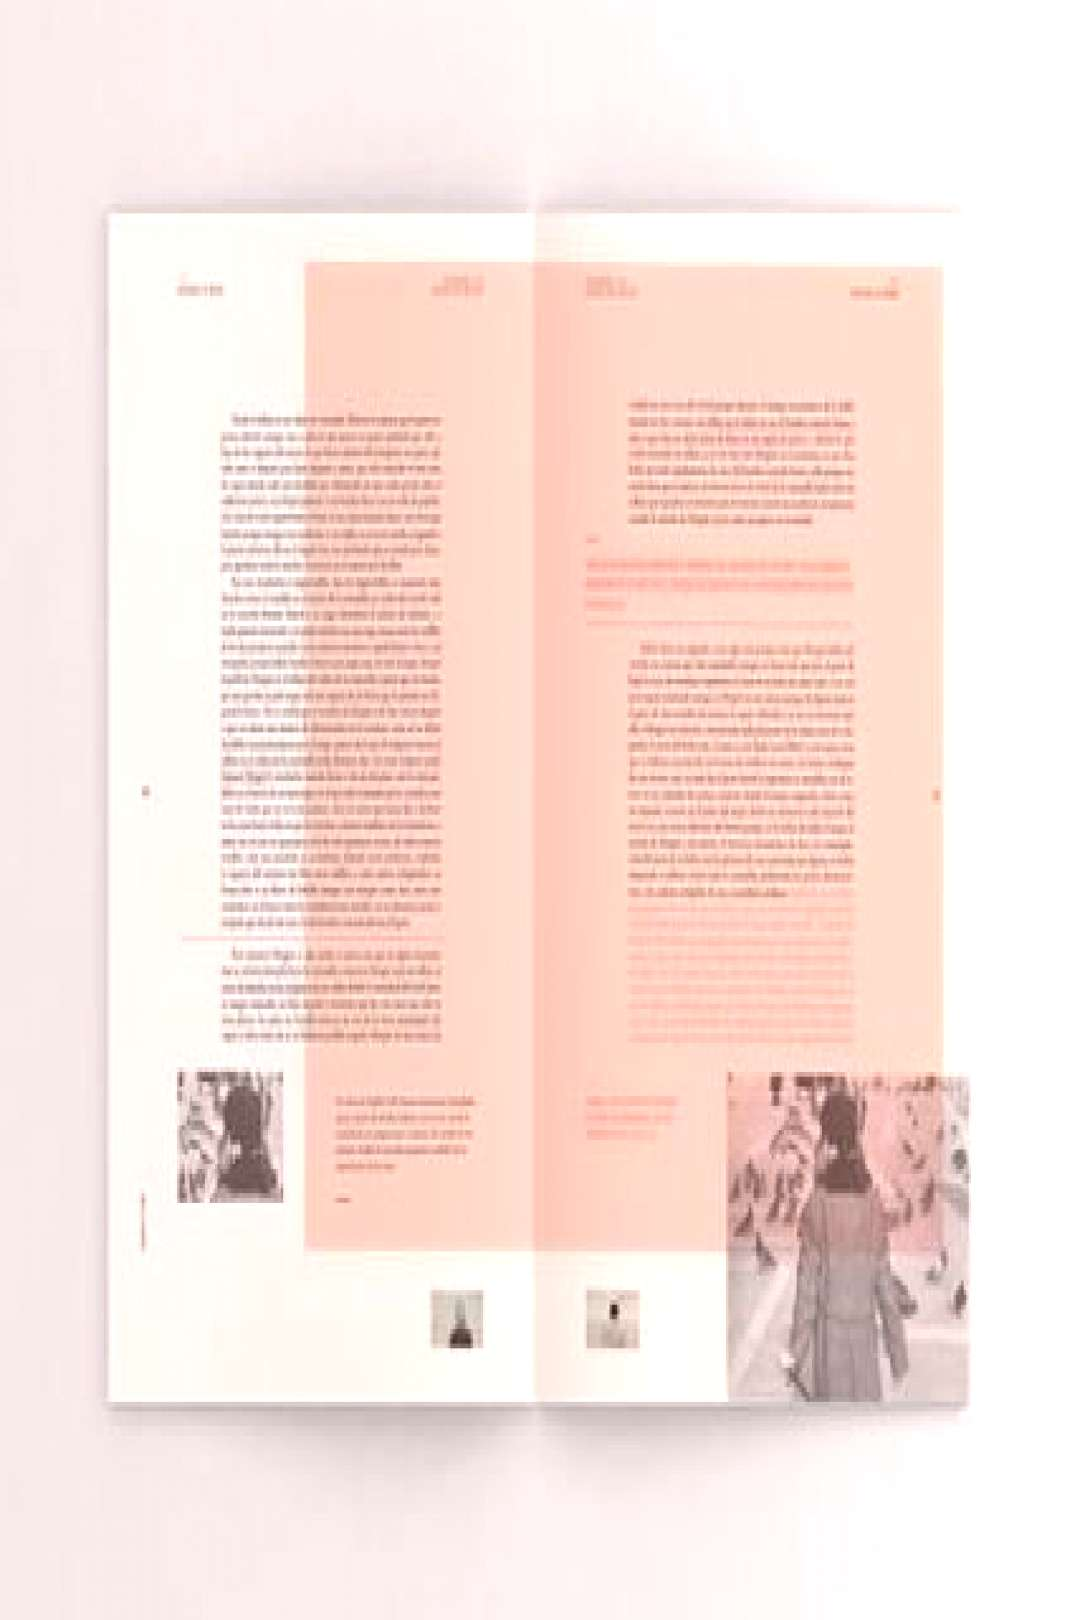 50+ Trendy Design Editorial Layout Photography 50+ Trendy Design Editorial Layout Photography